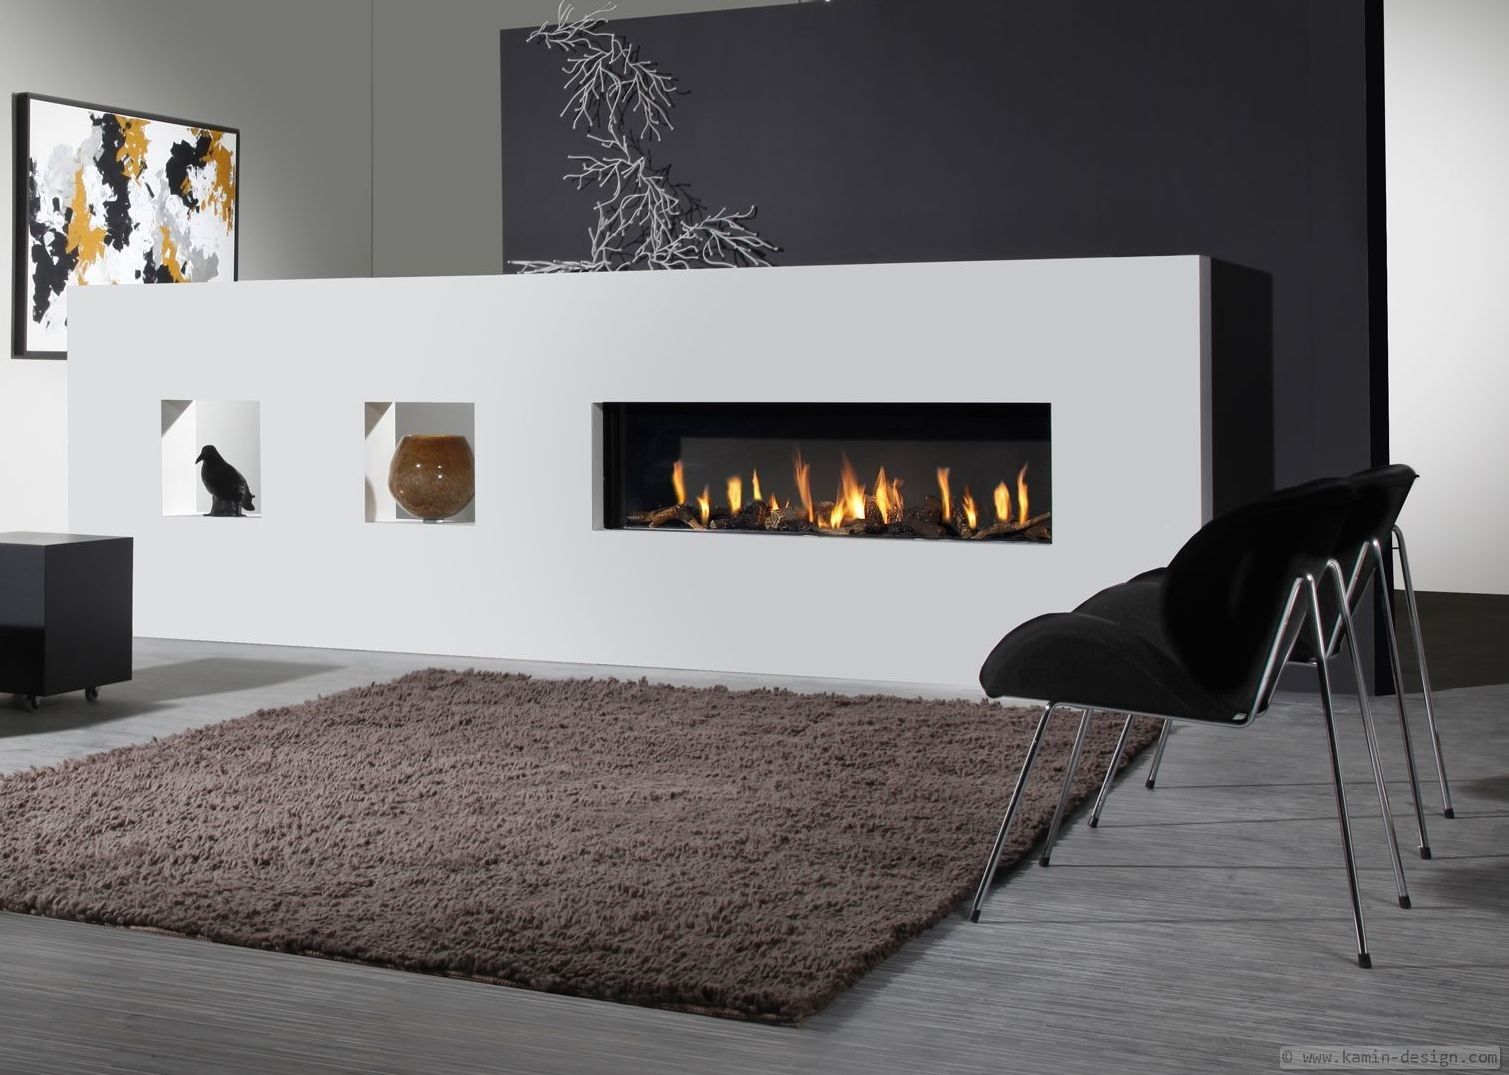 sonderanfertigung raumteilerkamin als elektrokamin oder ethanolkamin. Black Bedroom Furniture Sets. Home Design Ideas